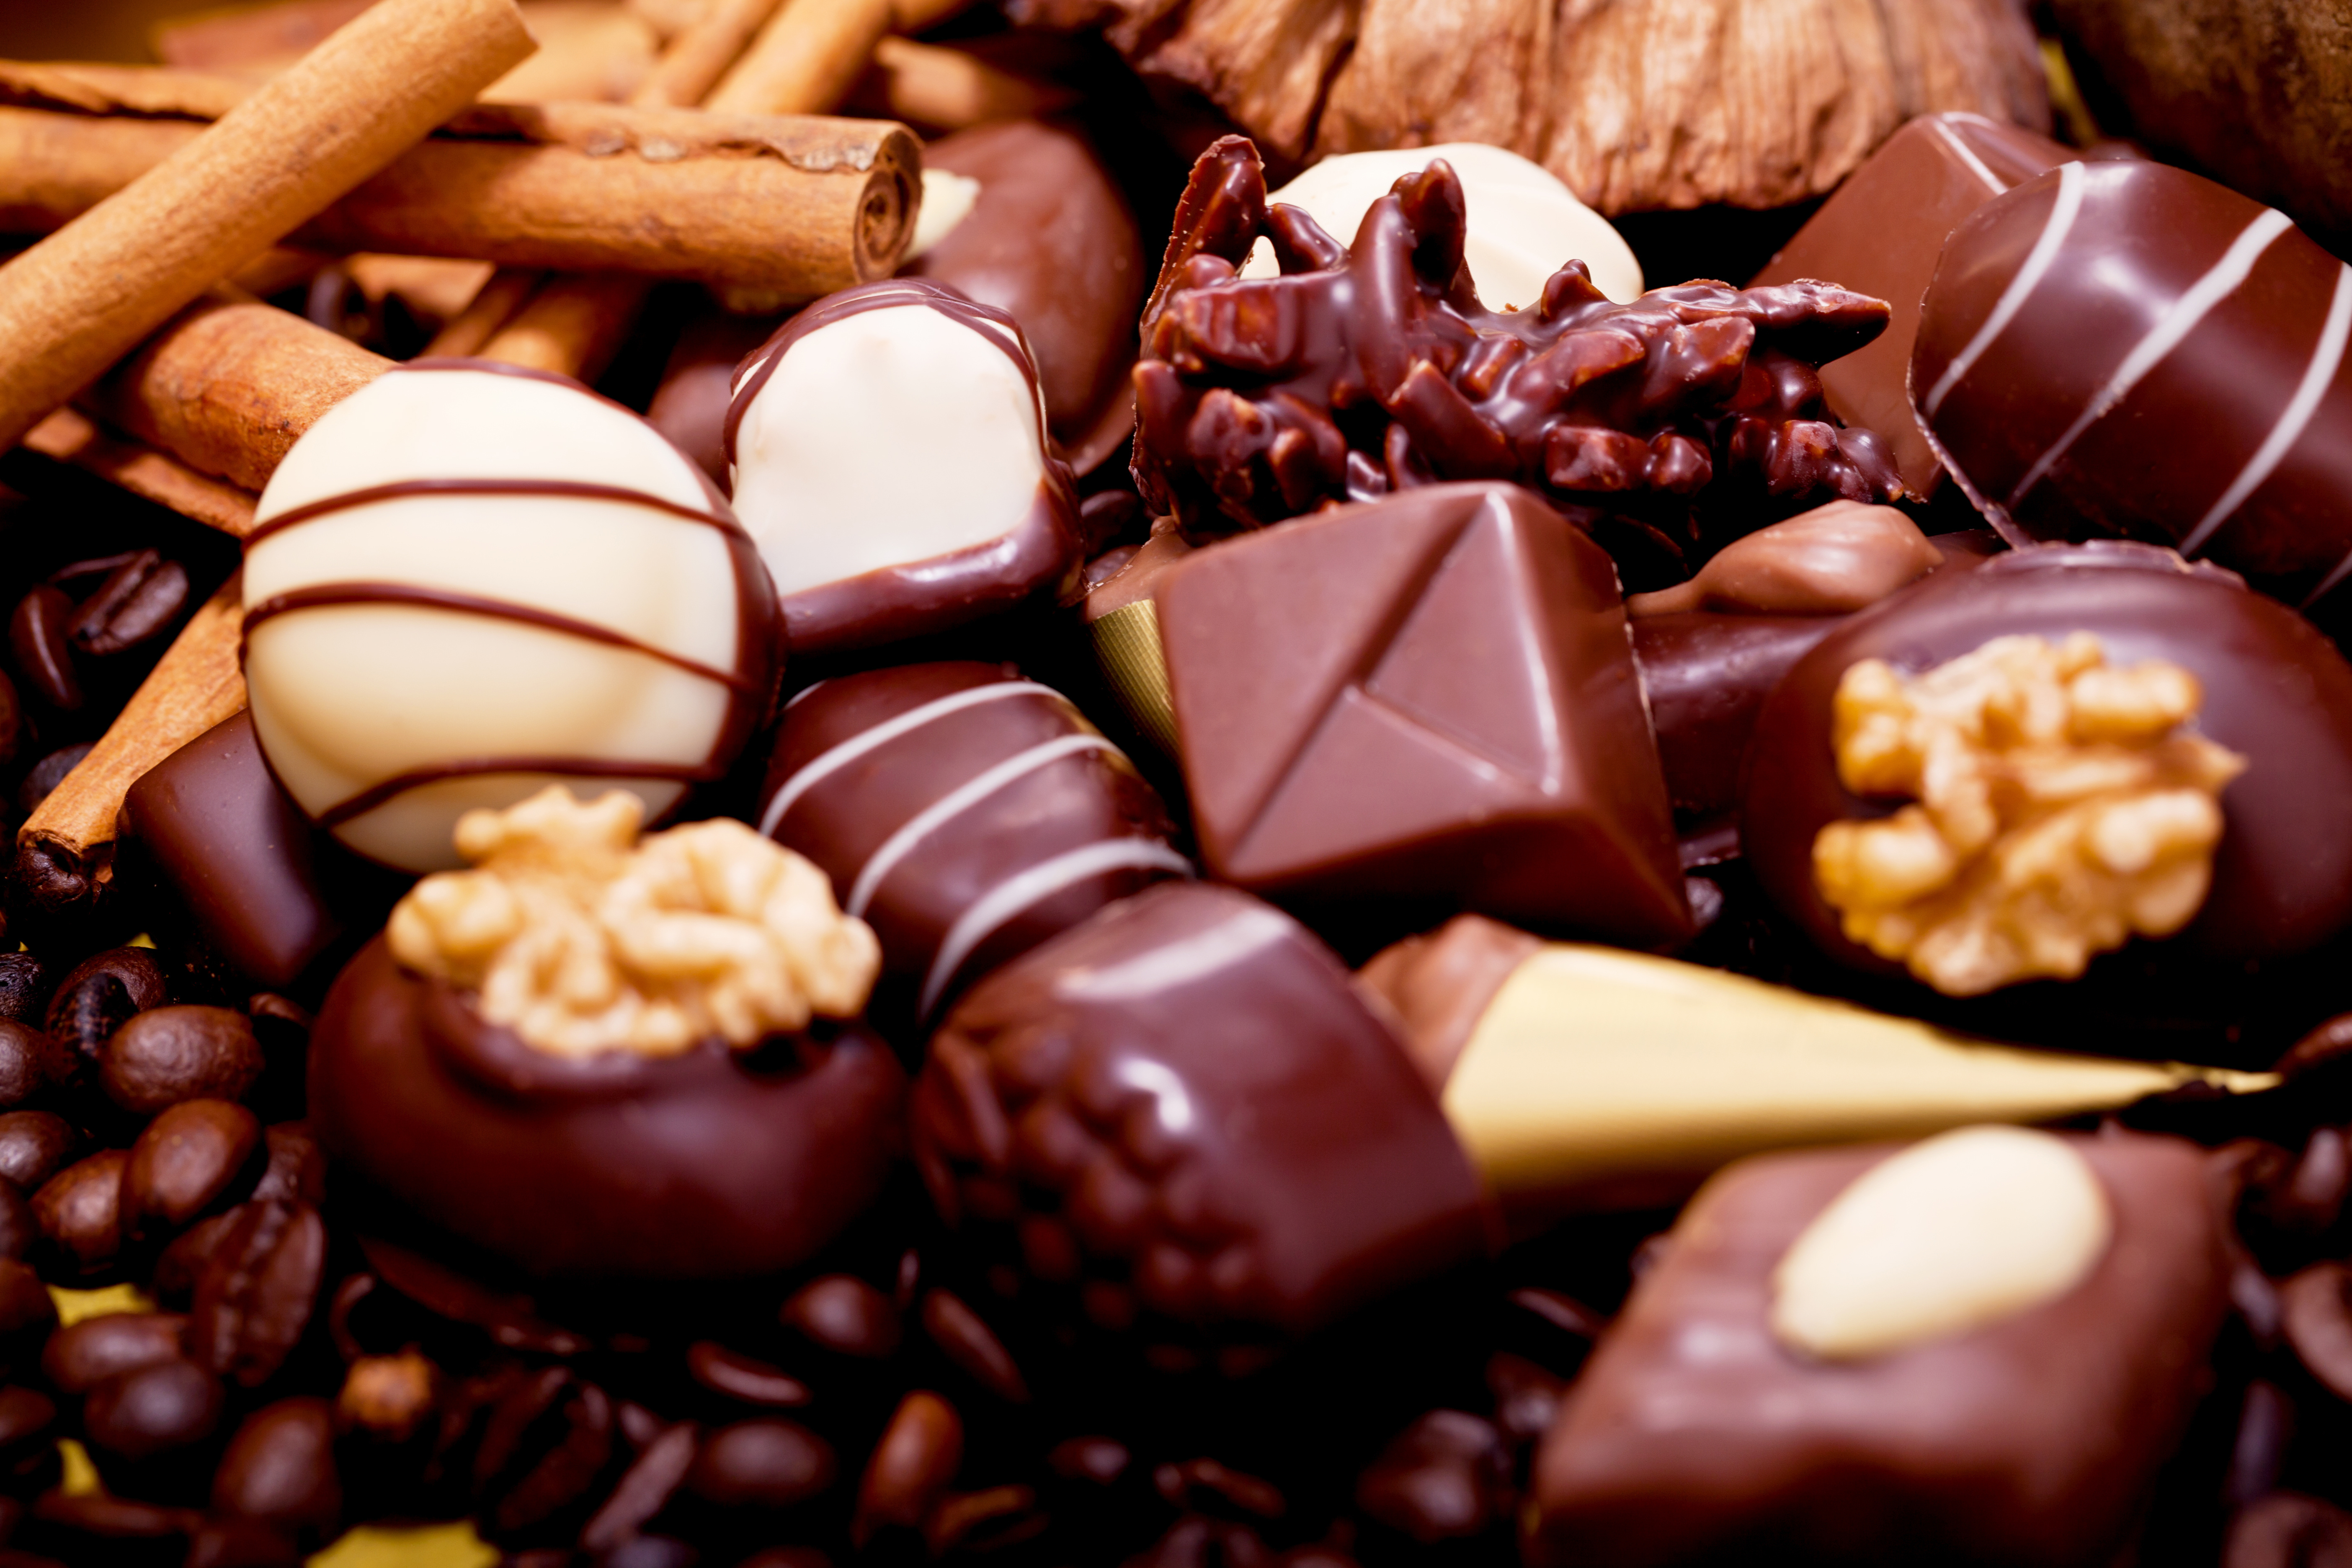 255 Chocolate HD Wallpapers   Backgrounds - Wallpaper Abyss